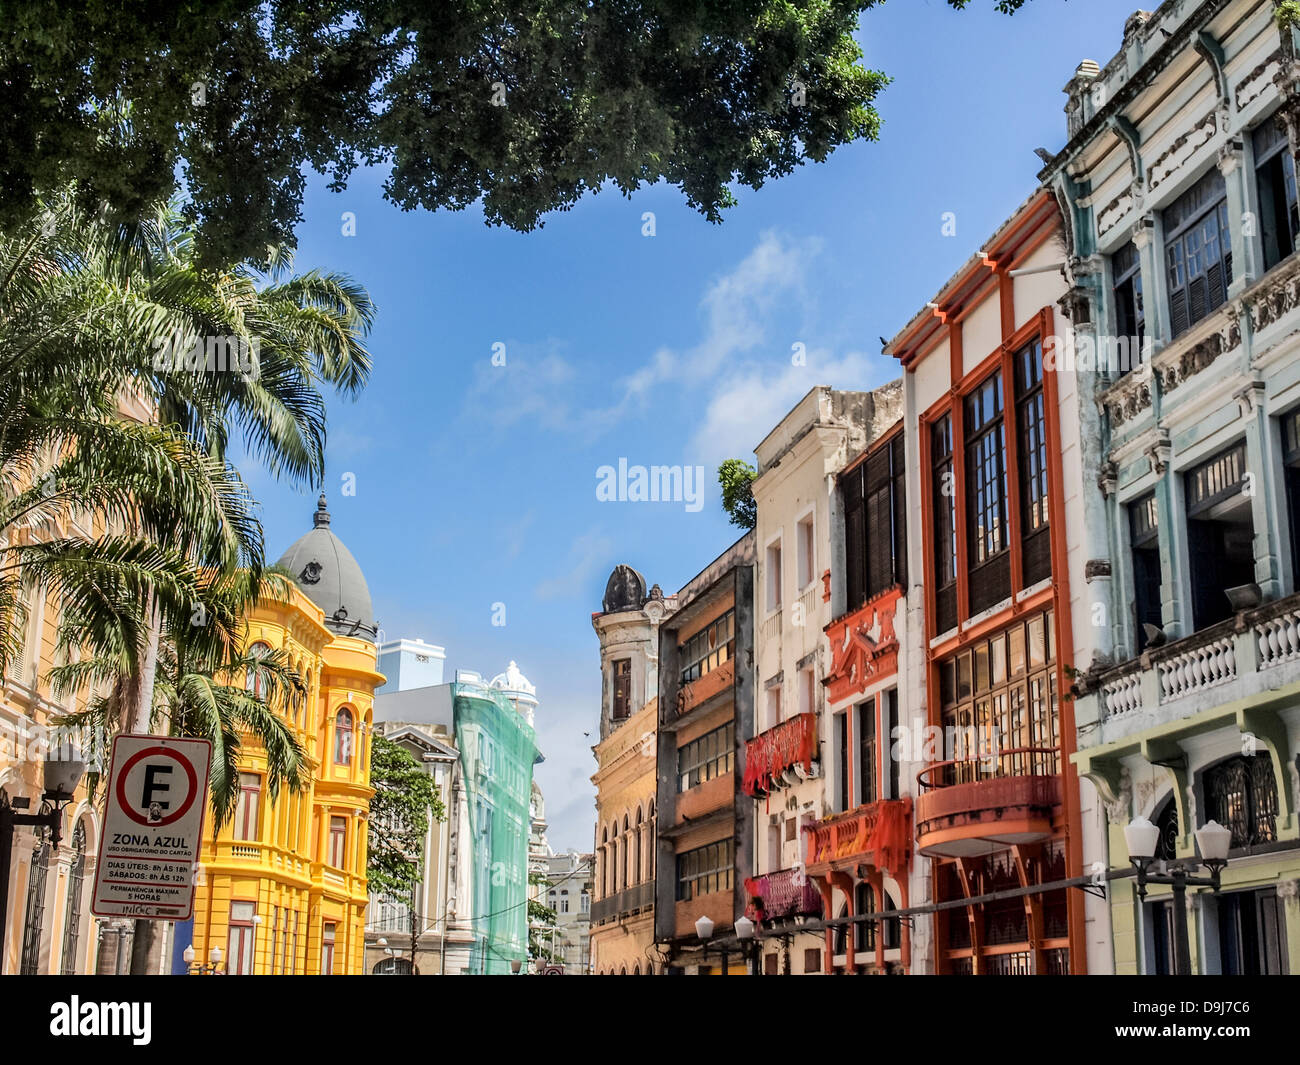 The colonial architecture on Bom Jesus Street in the historical old town of Recife, the capital of Pernambuco region - Stock Image